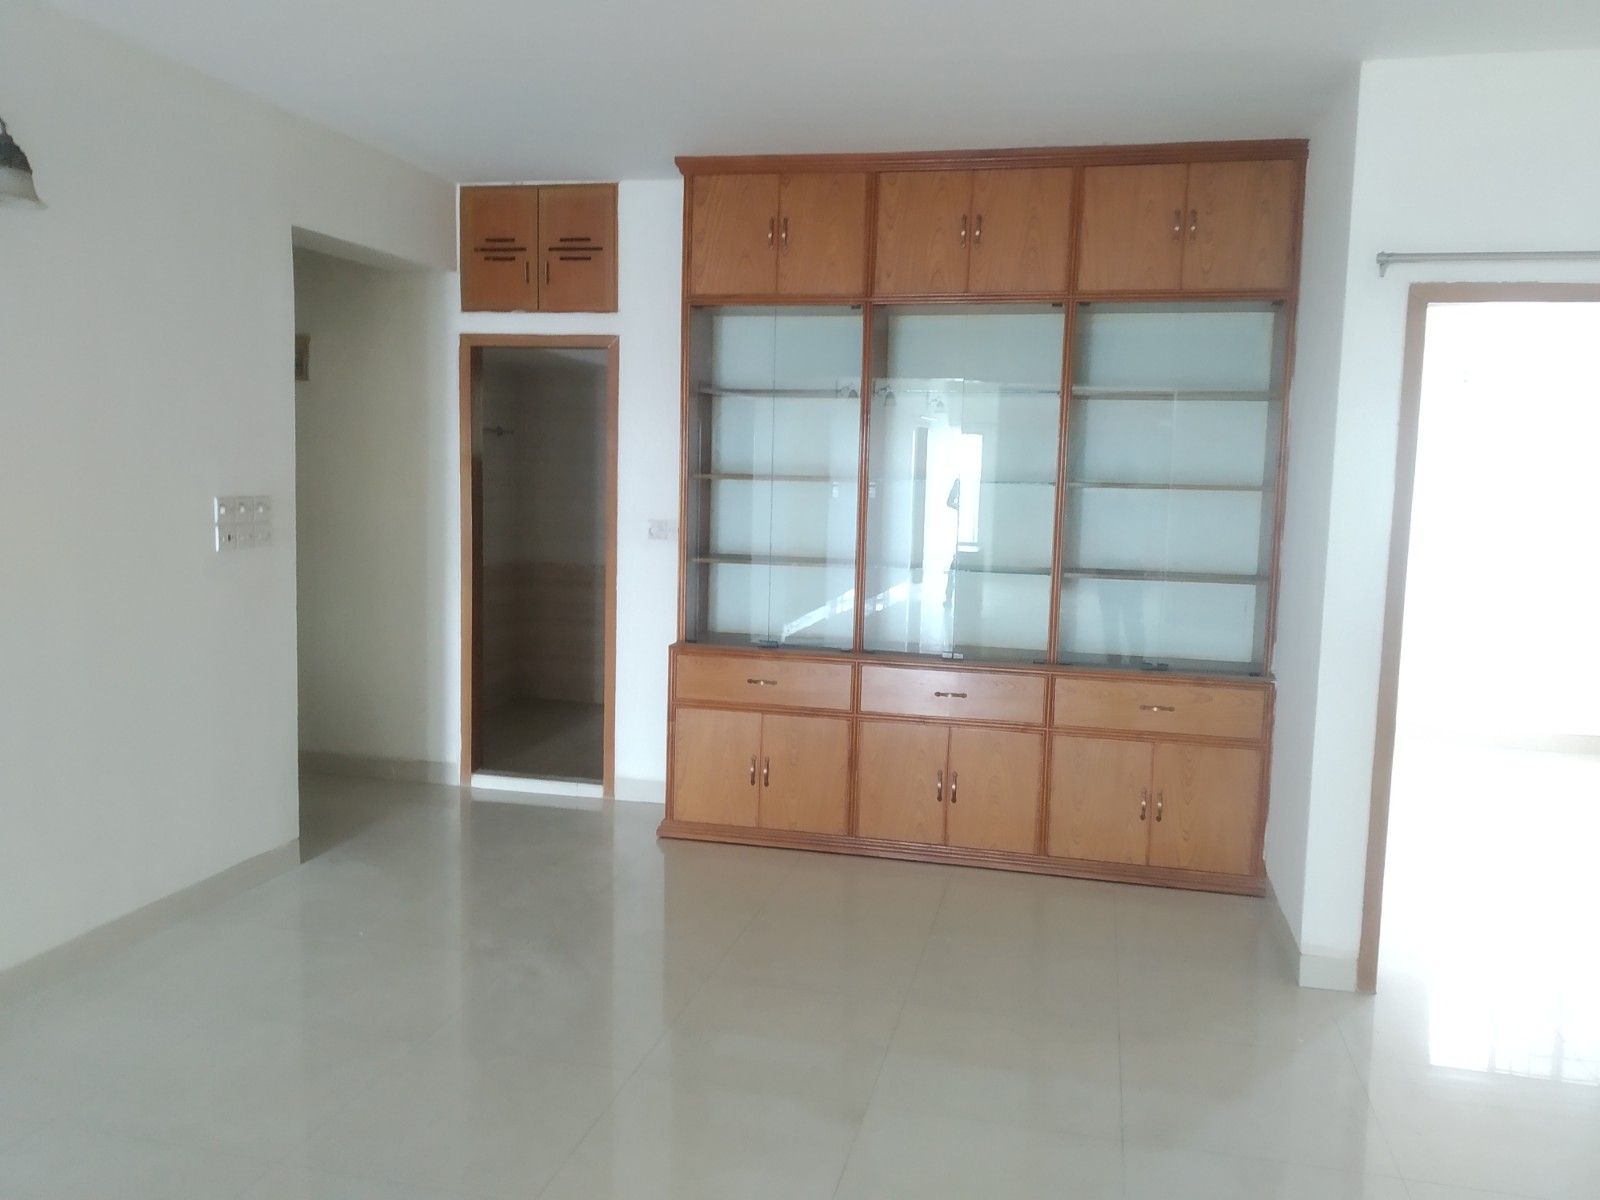 2810-sft-apartment-for-sale-at-dhanmondi-14th-floor-870580